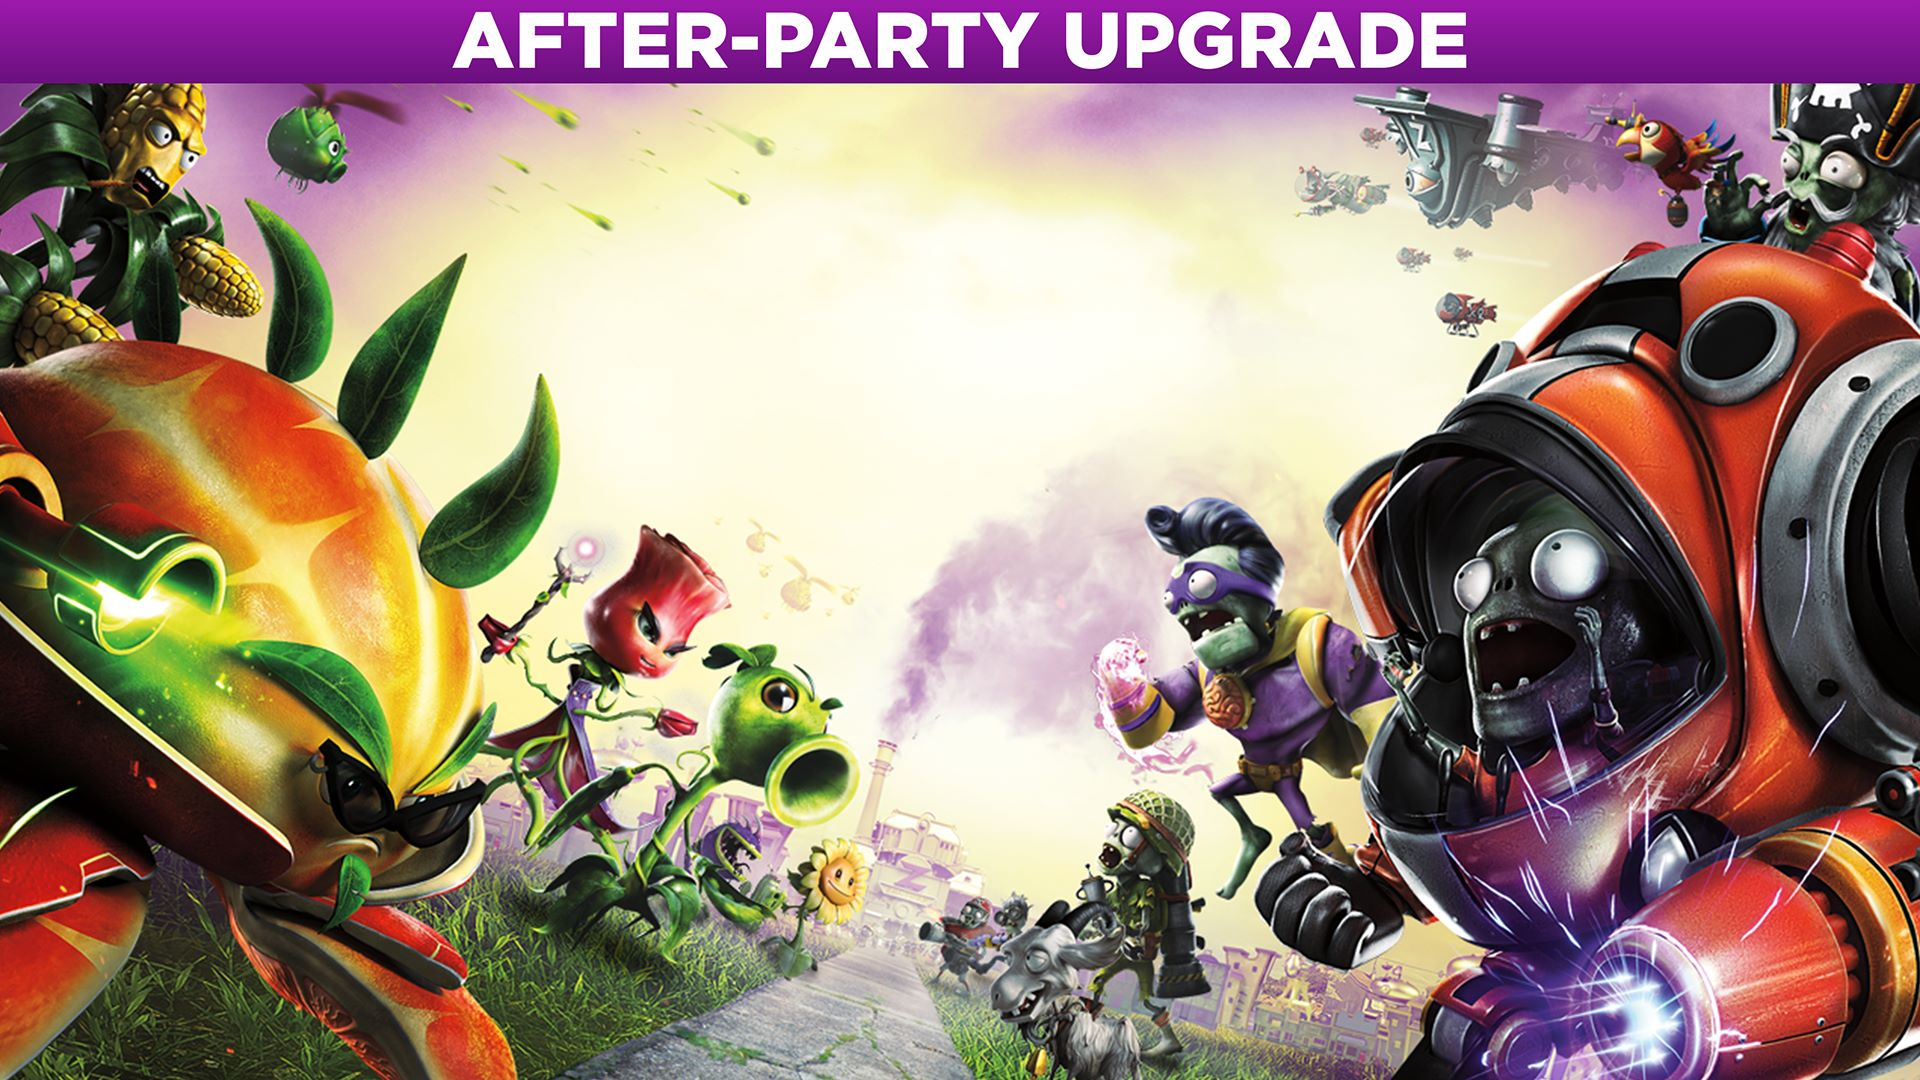 plants vs zombies garden warfare 2 after party upgrade - Plants Vs Zombies Garden Warfare 2 Pc